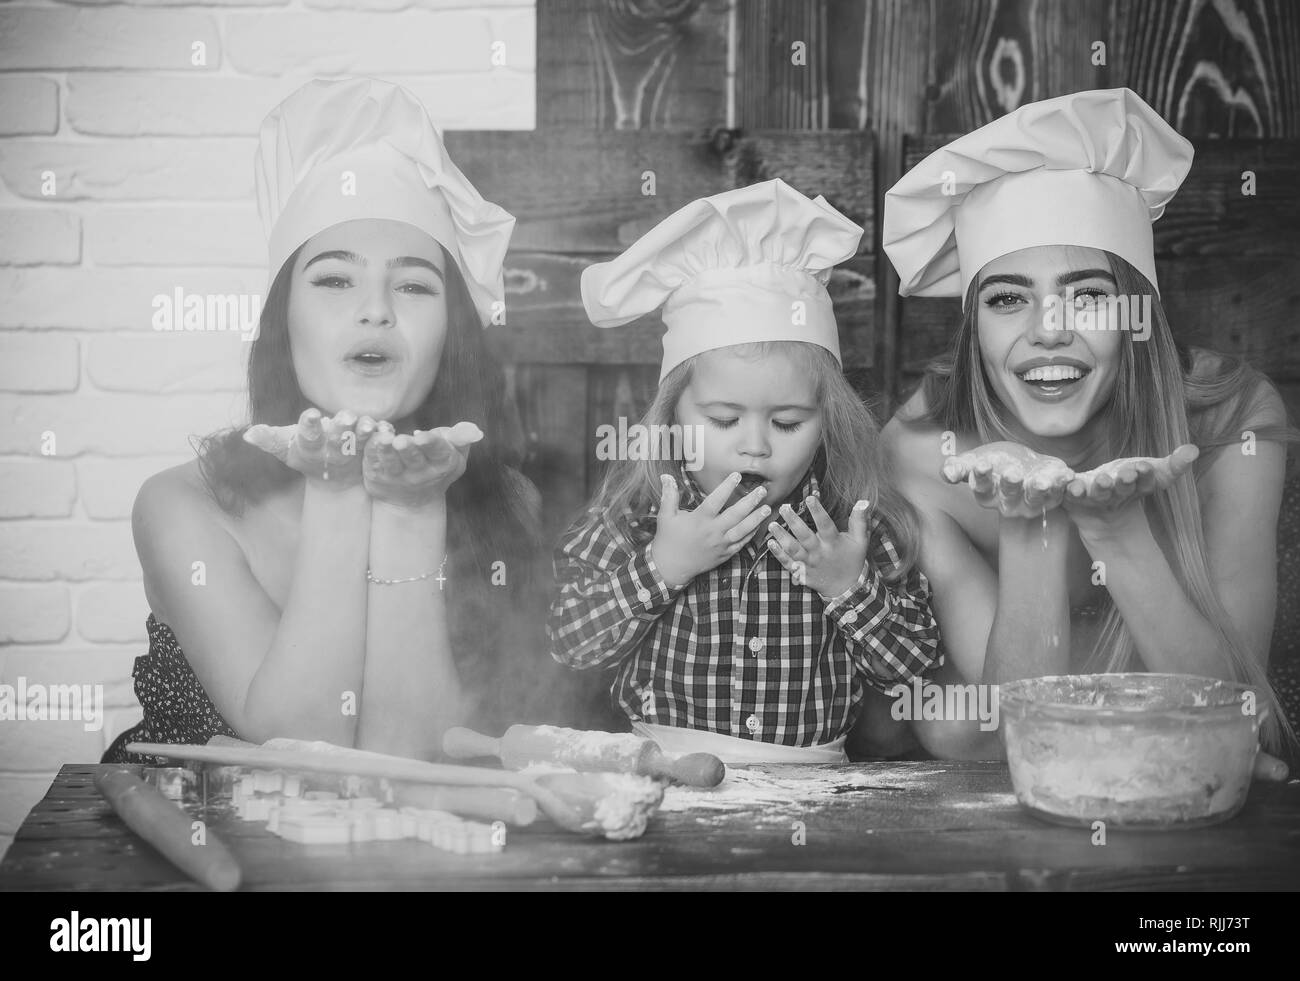 Child and women blowing flour - Stock Image